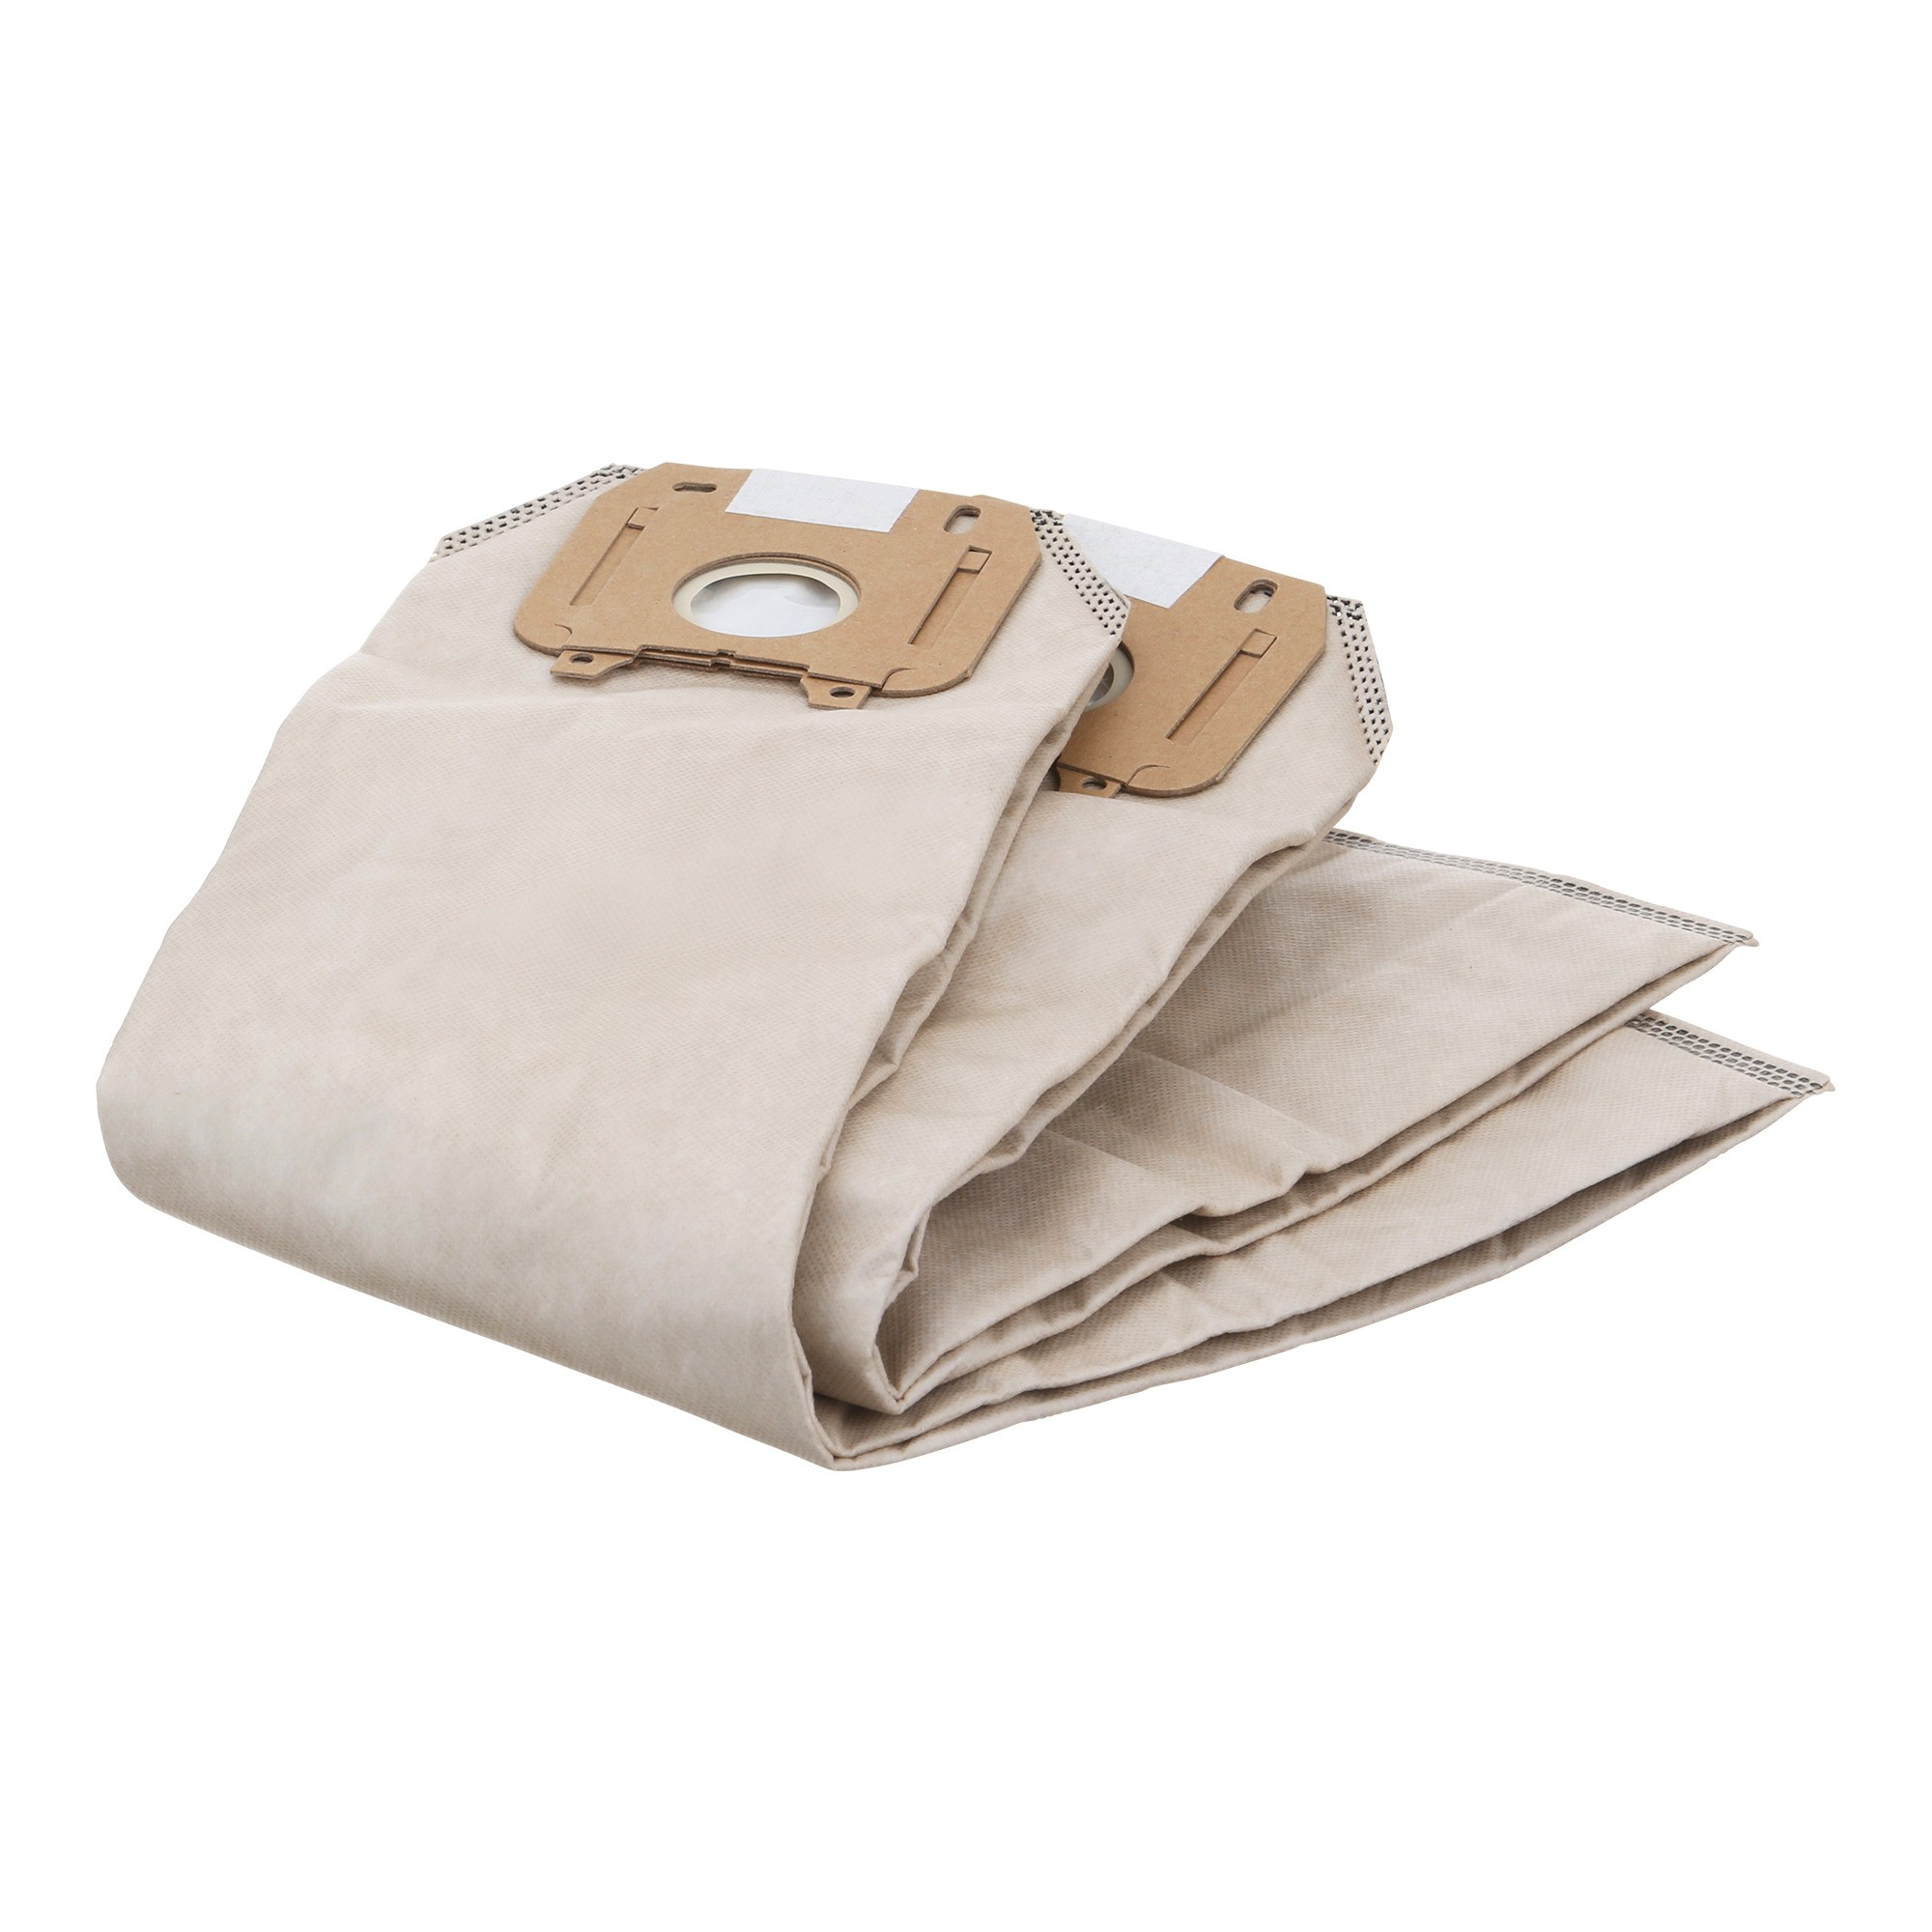 Vax Magnesium Upright Dust Bag